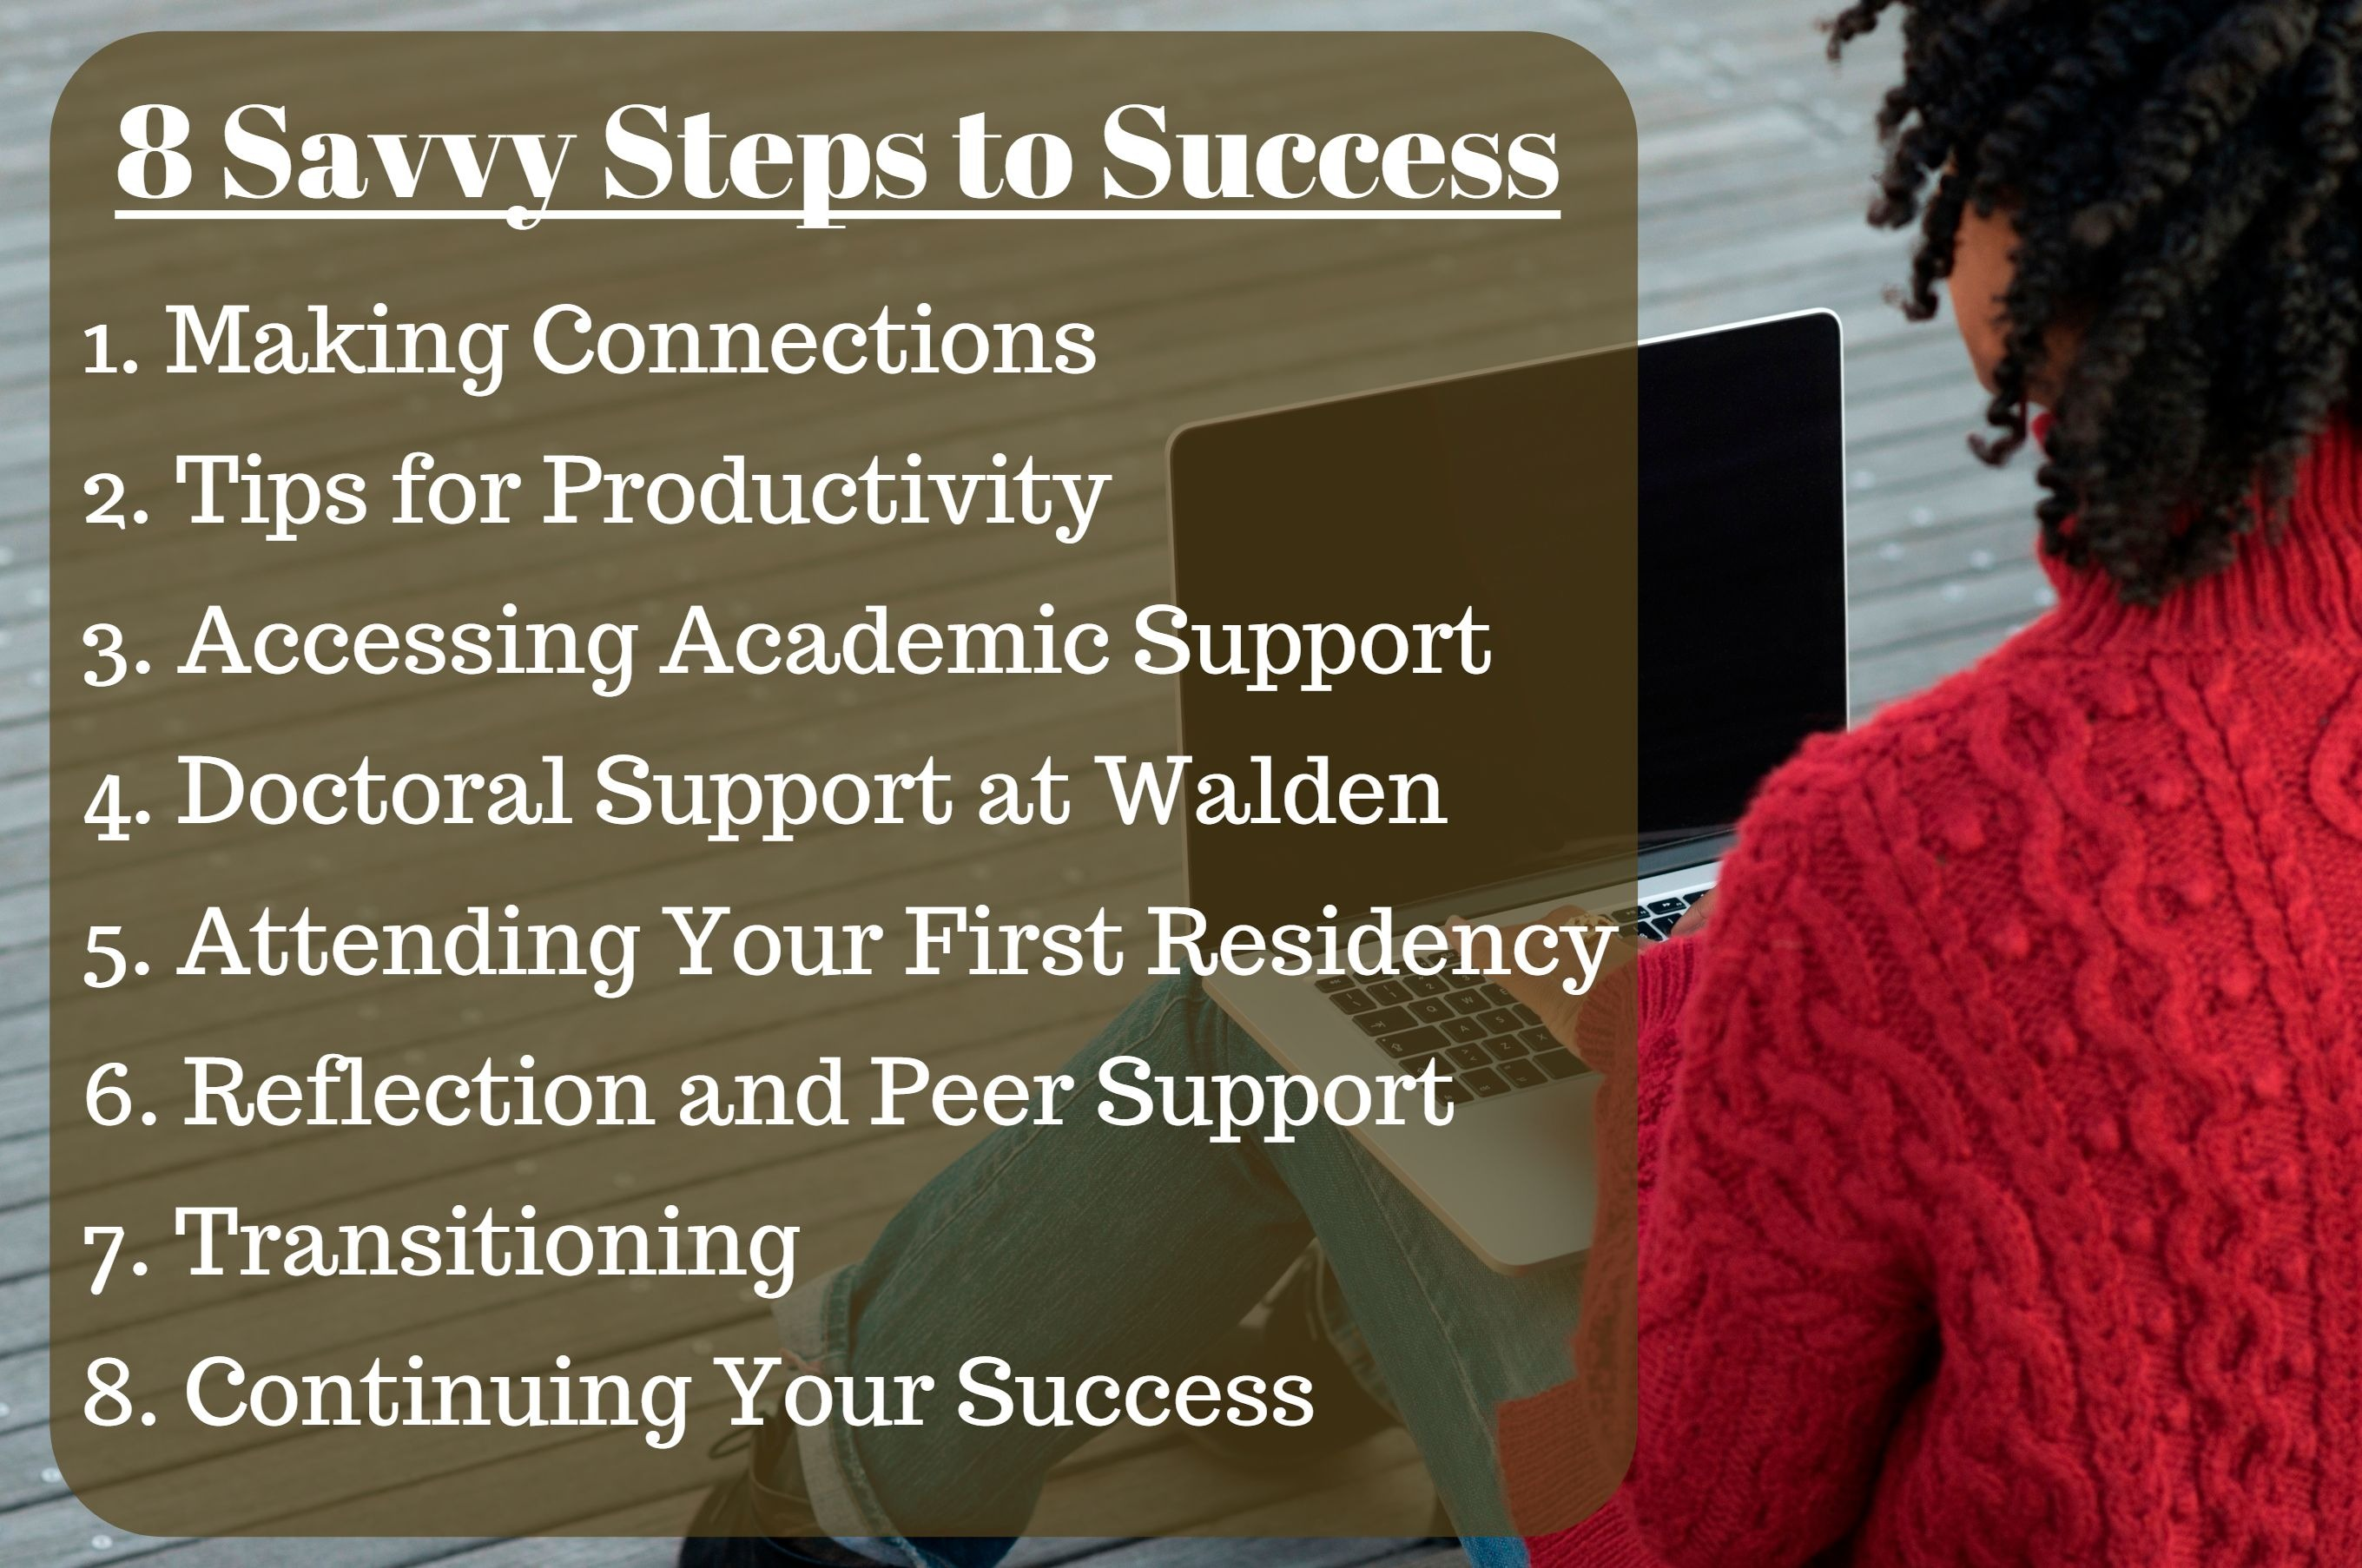 8 Savvy Steps to Success: 1. Making connections, 2. Tips for Productivity, 3. Accessing academic support, 4. Doctoral support at Walden, 5. Attending your first residency, 6. Reflection and peer support, 7. Transitioning, 8. Continuing your success